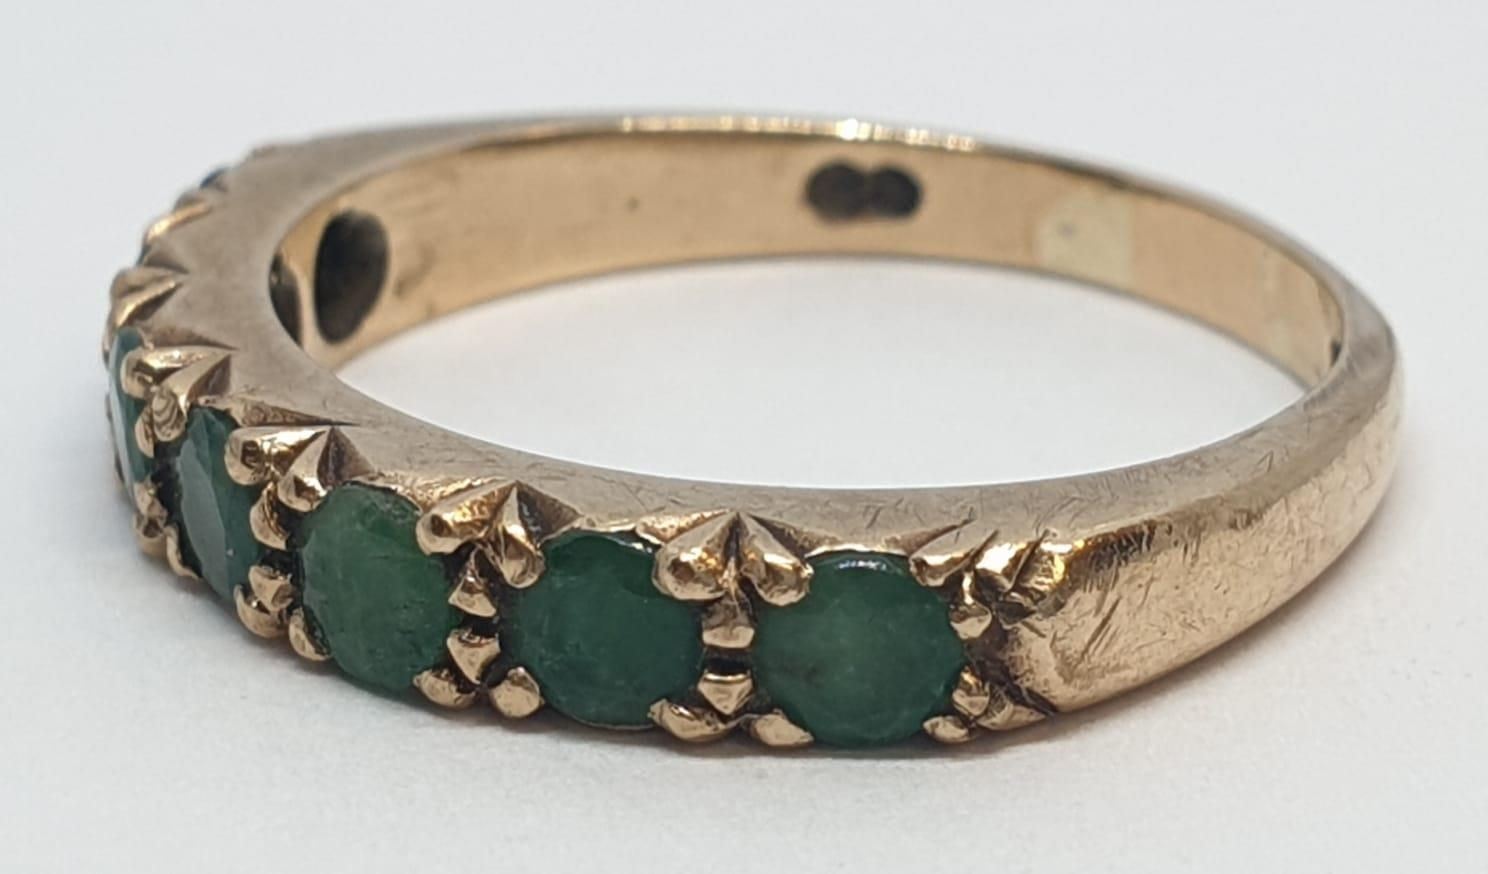 9ct Yellow gold emerald half eternity ring. Weight 2.8g, Size O. - Image 2 of 8